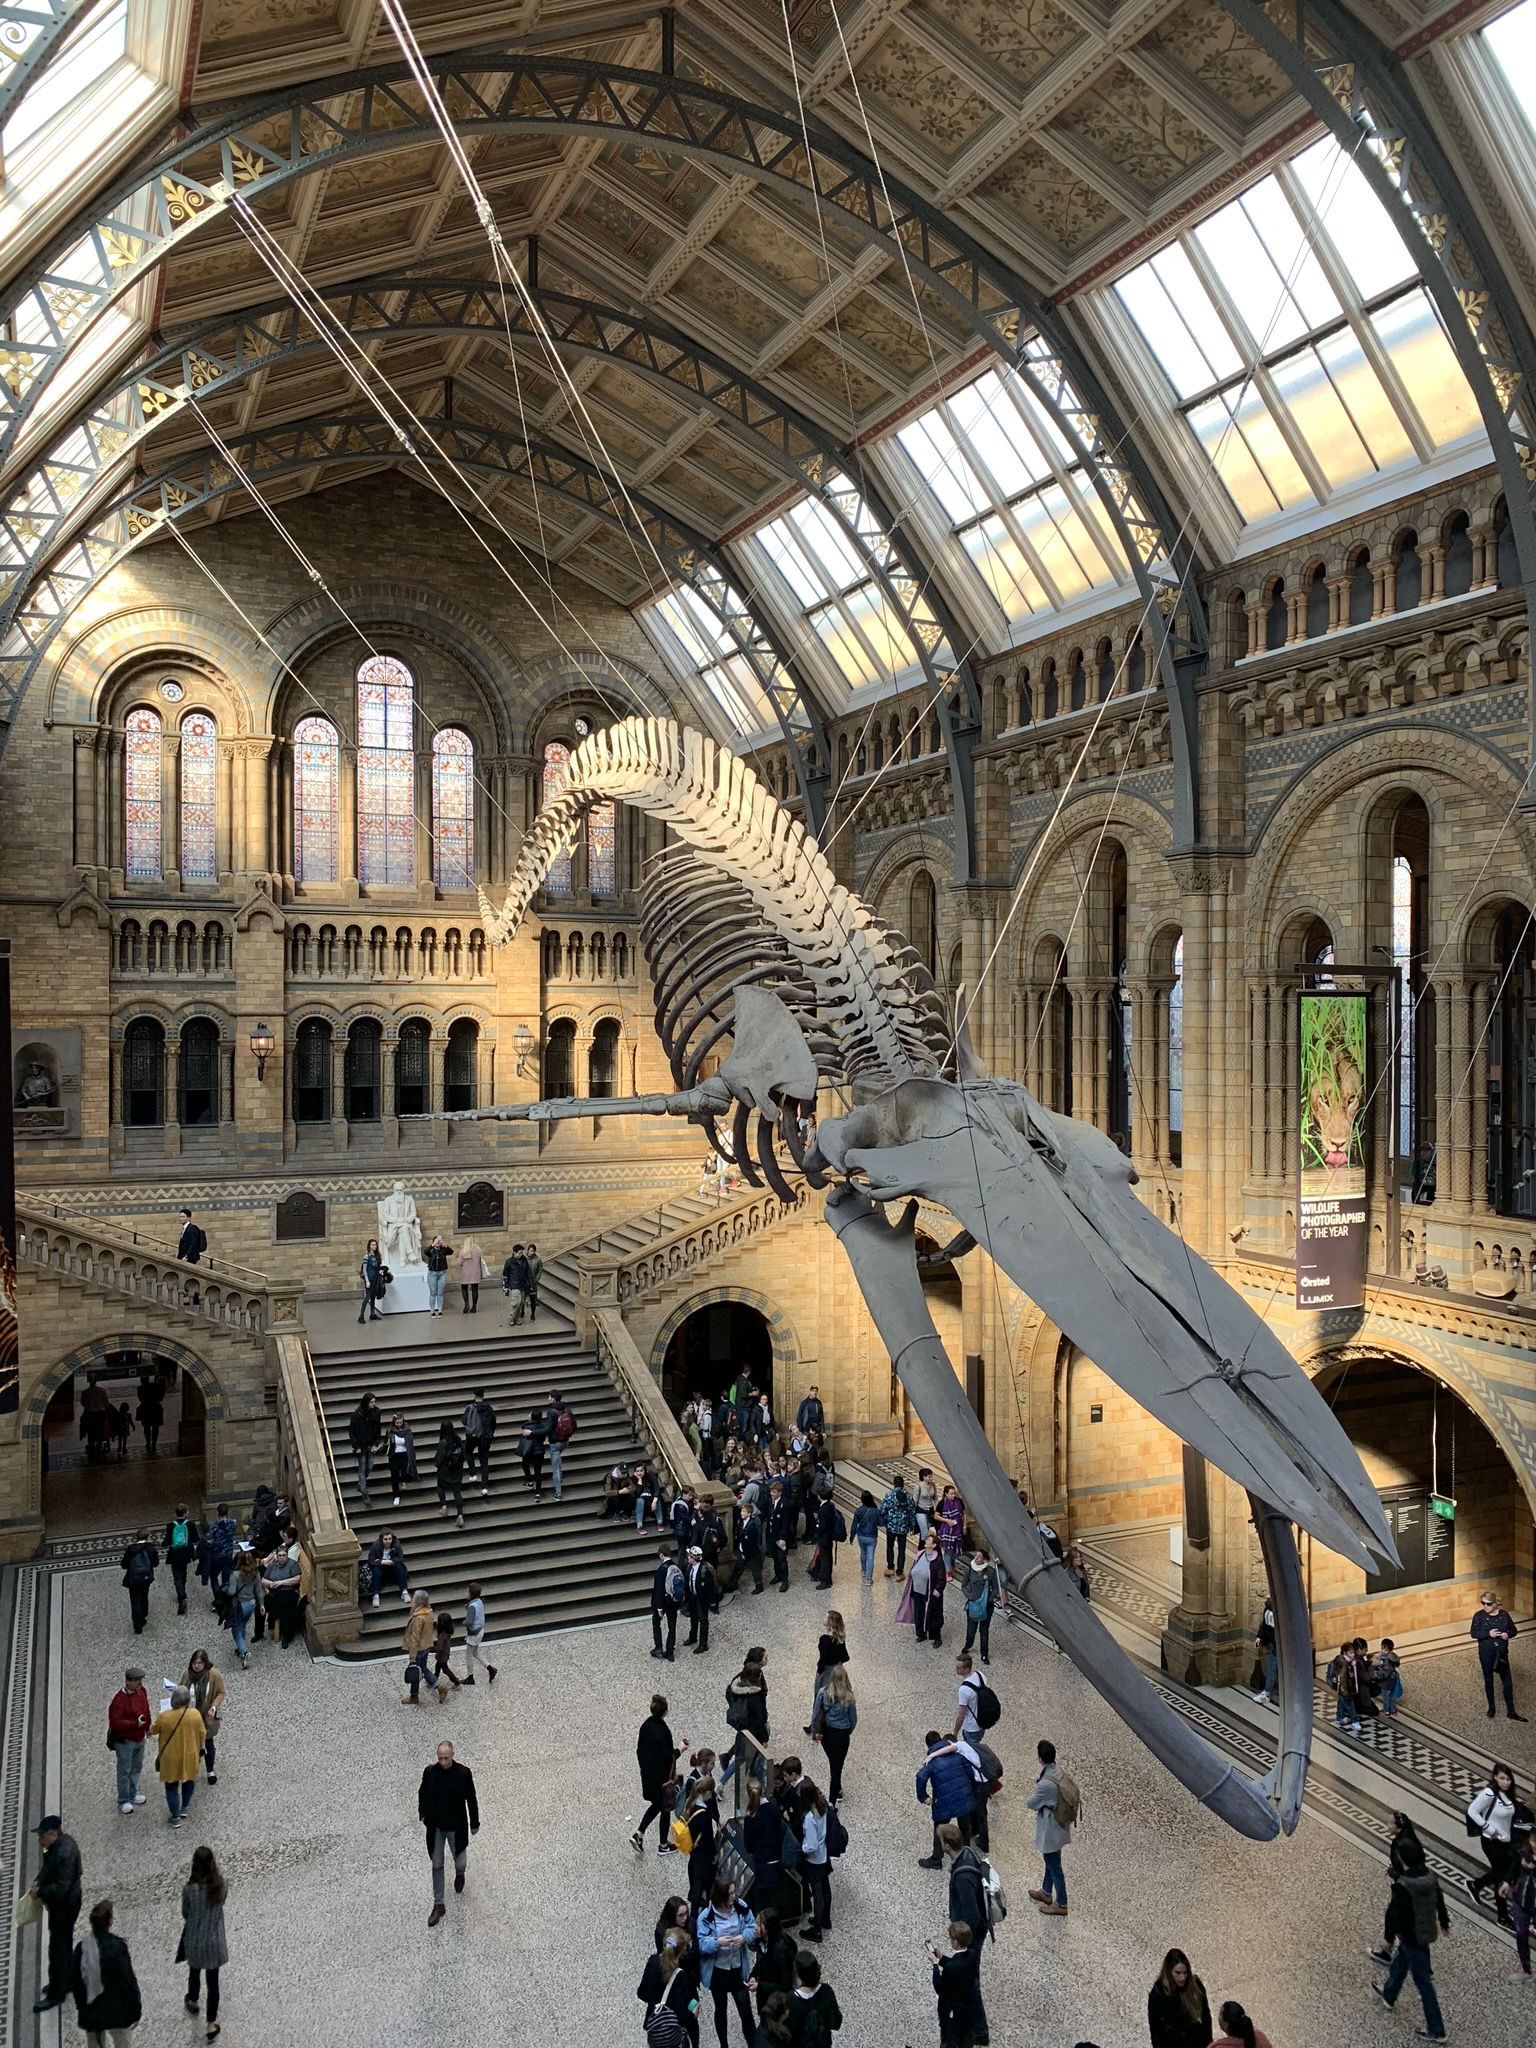 A whale skeleton in the main hall